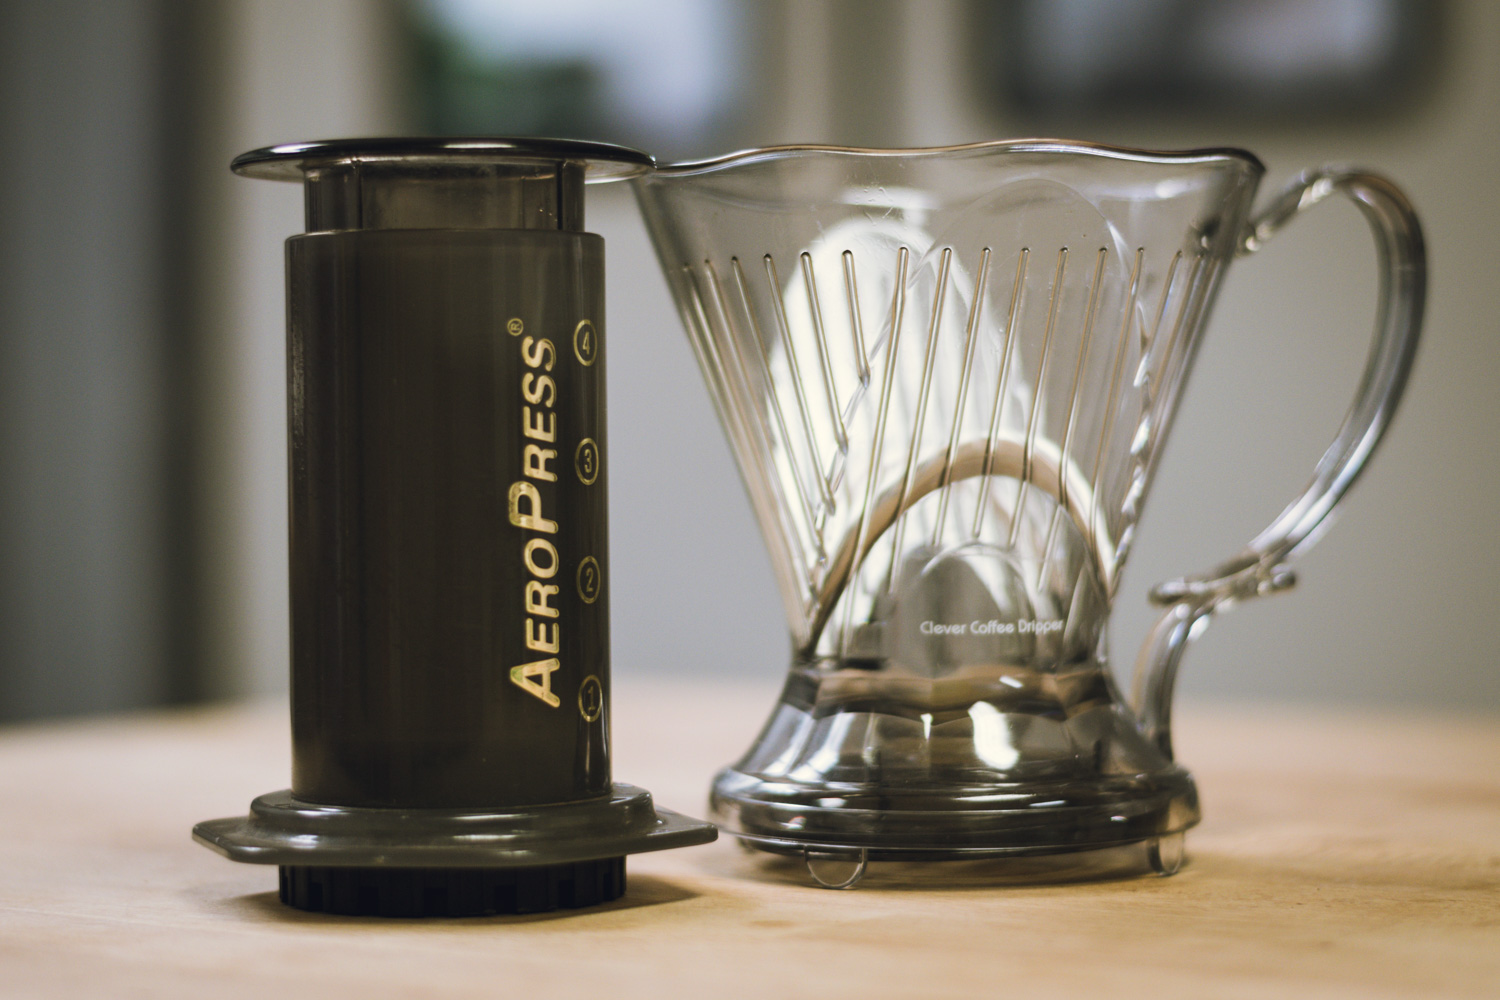 aeropress vs. clever for camping